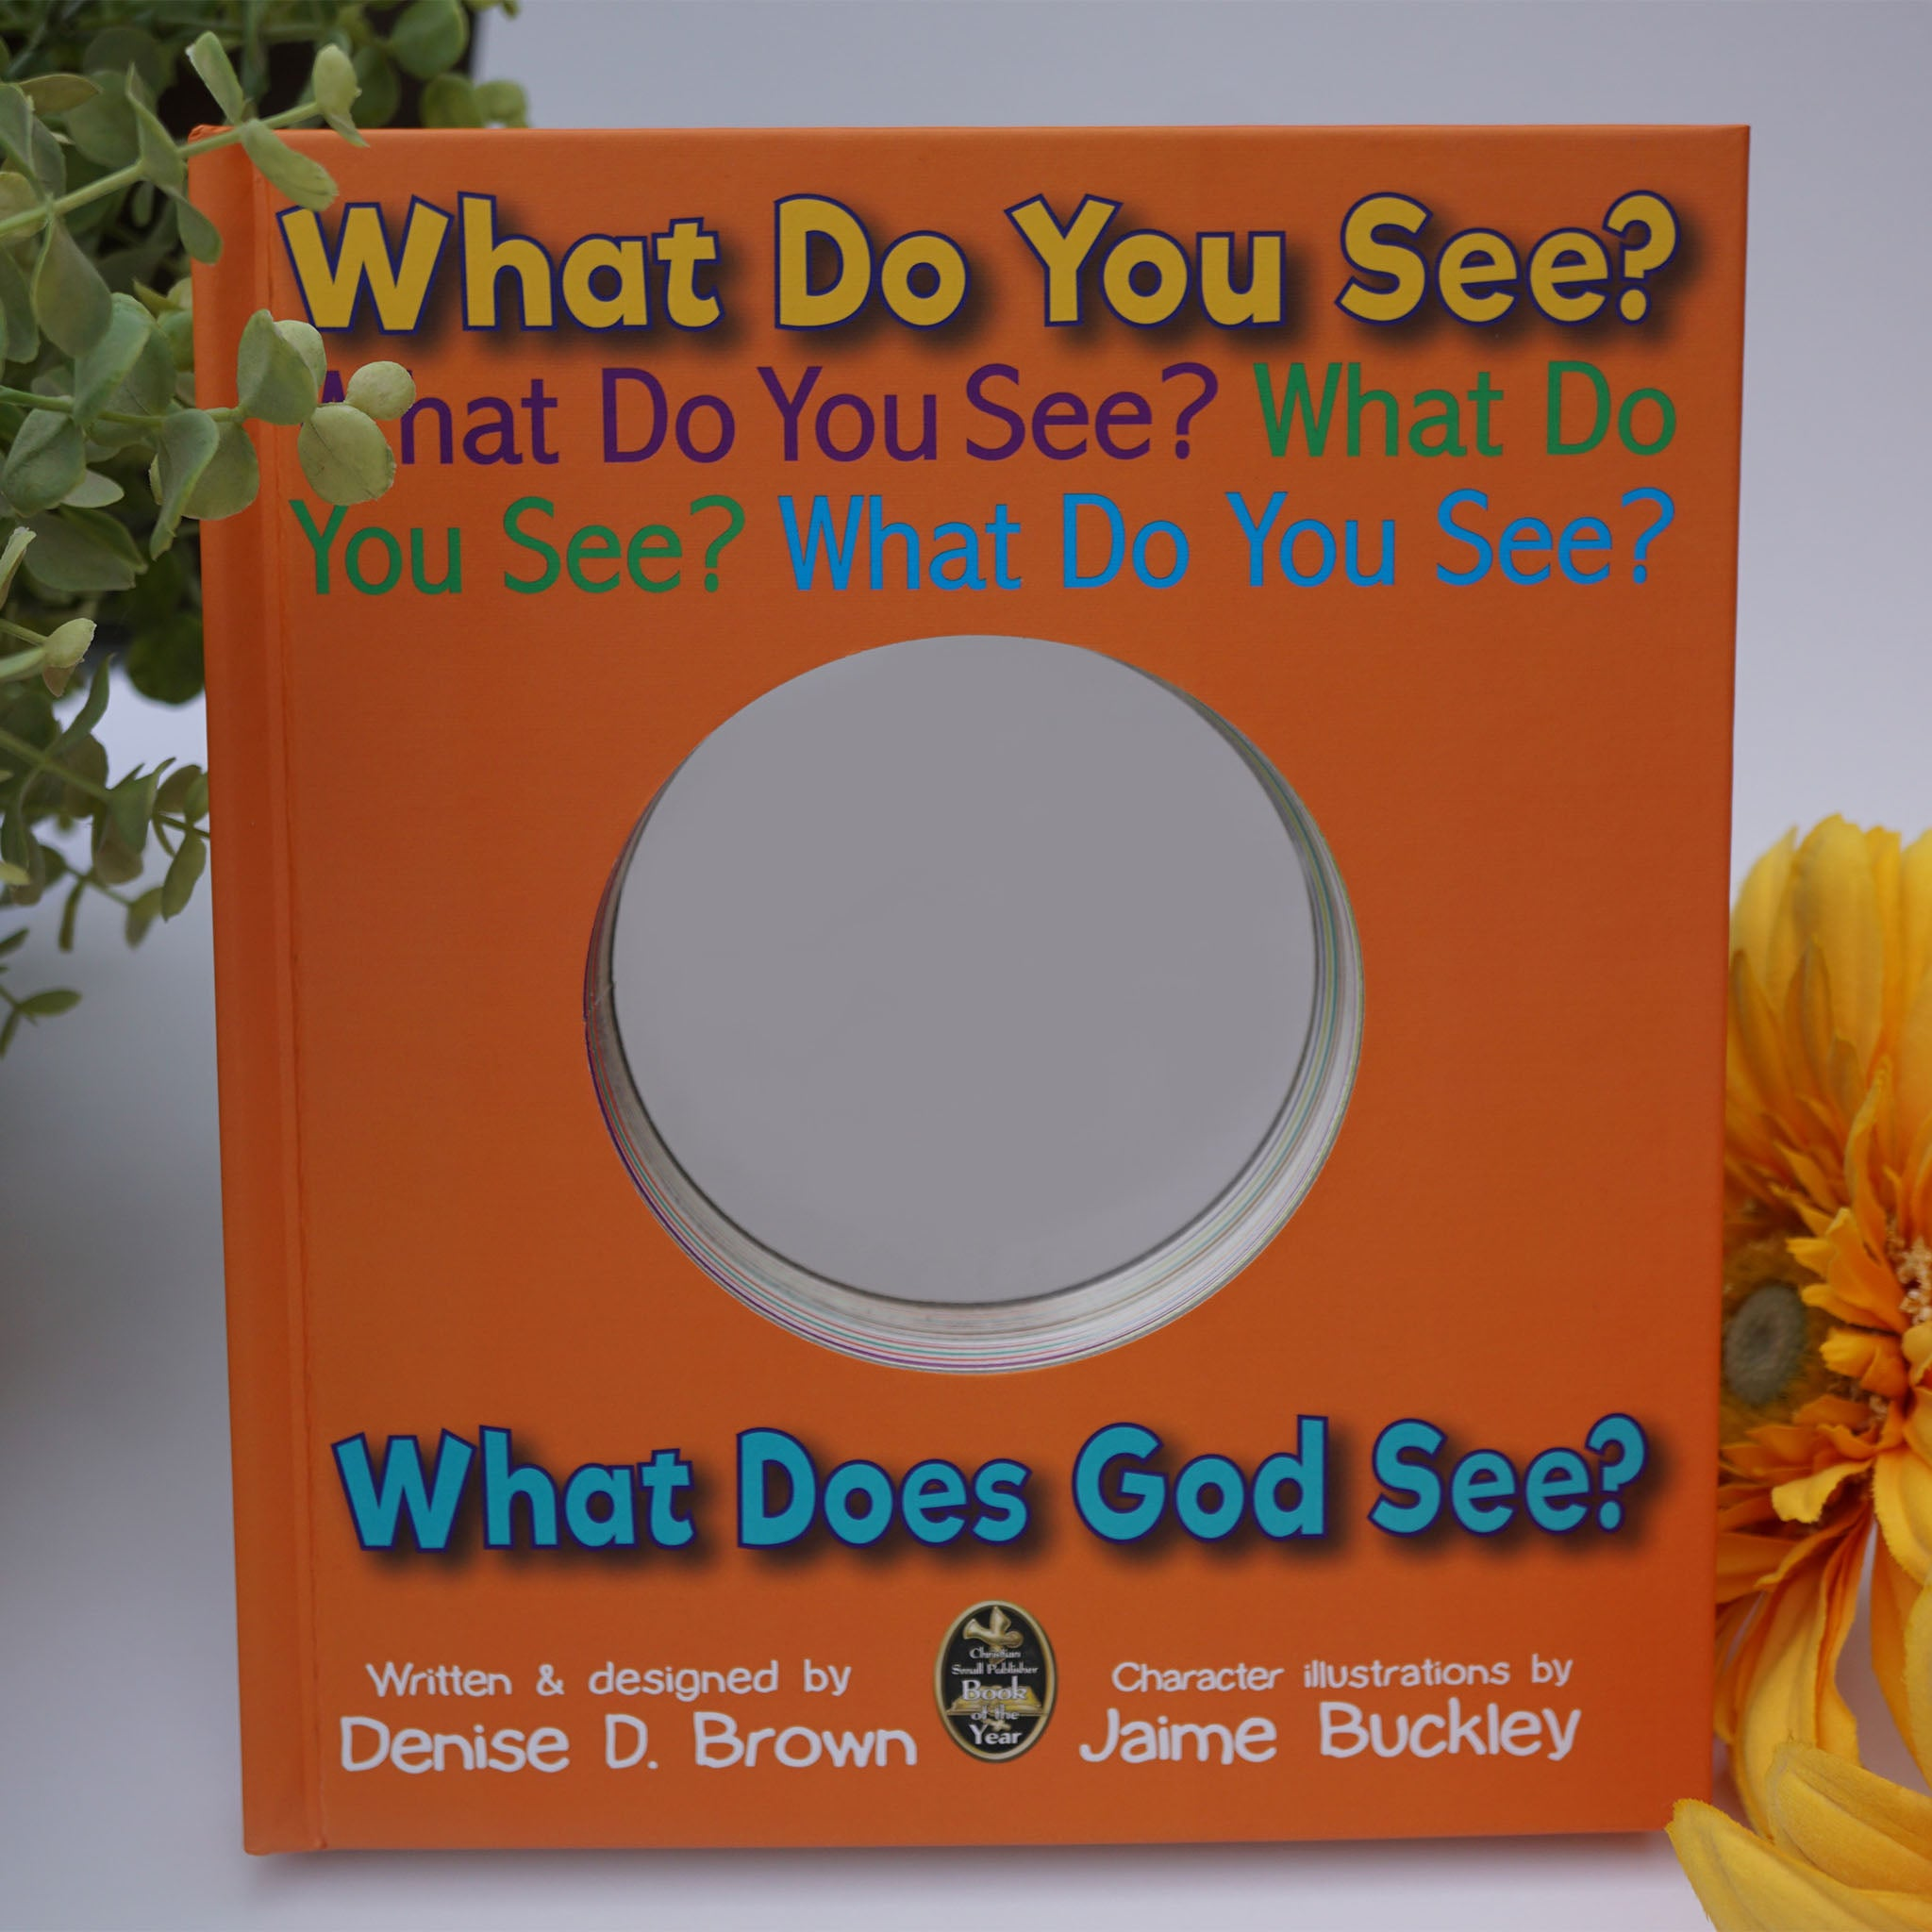 What Do You See? What Does God See?